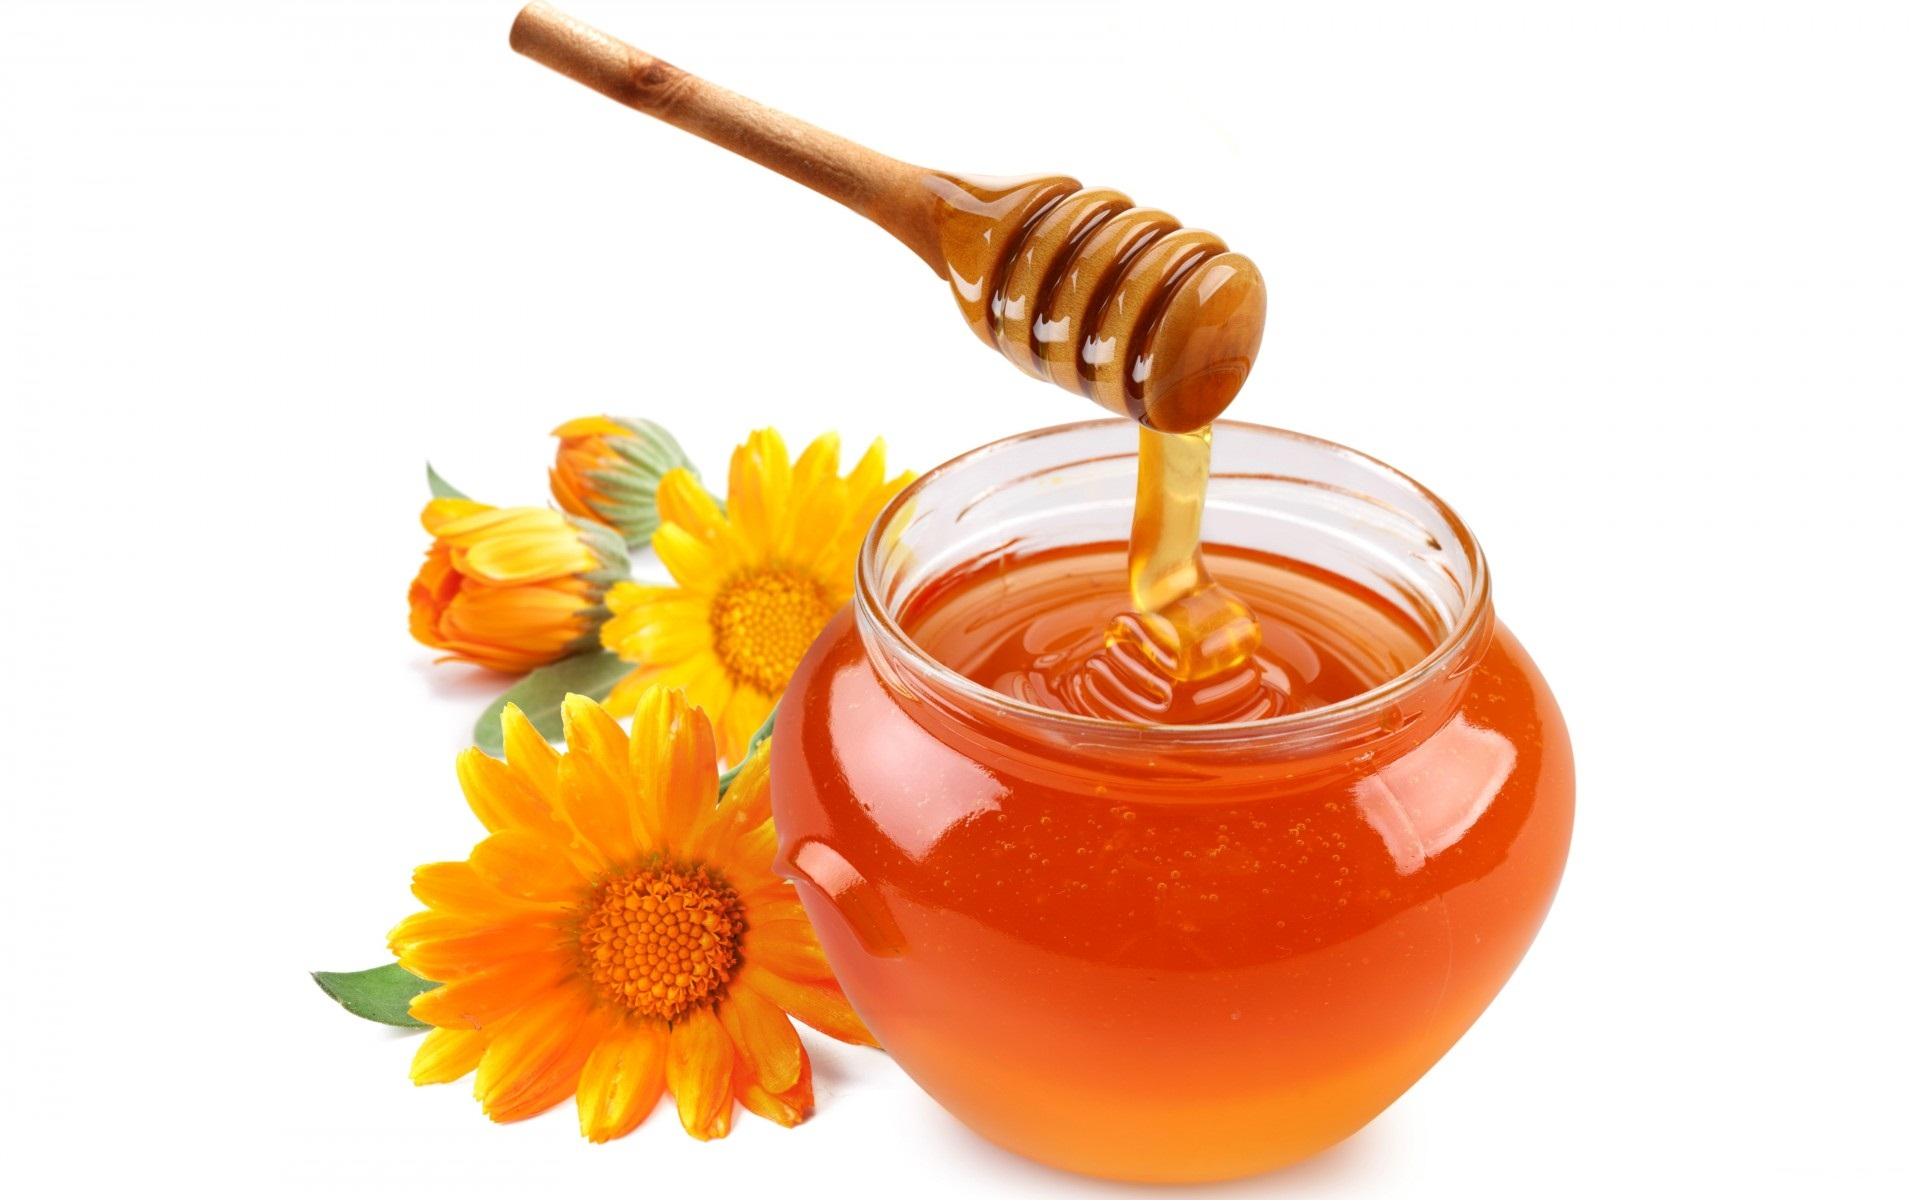 Floral Honey in a Spoon 58.55 Kb